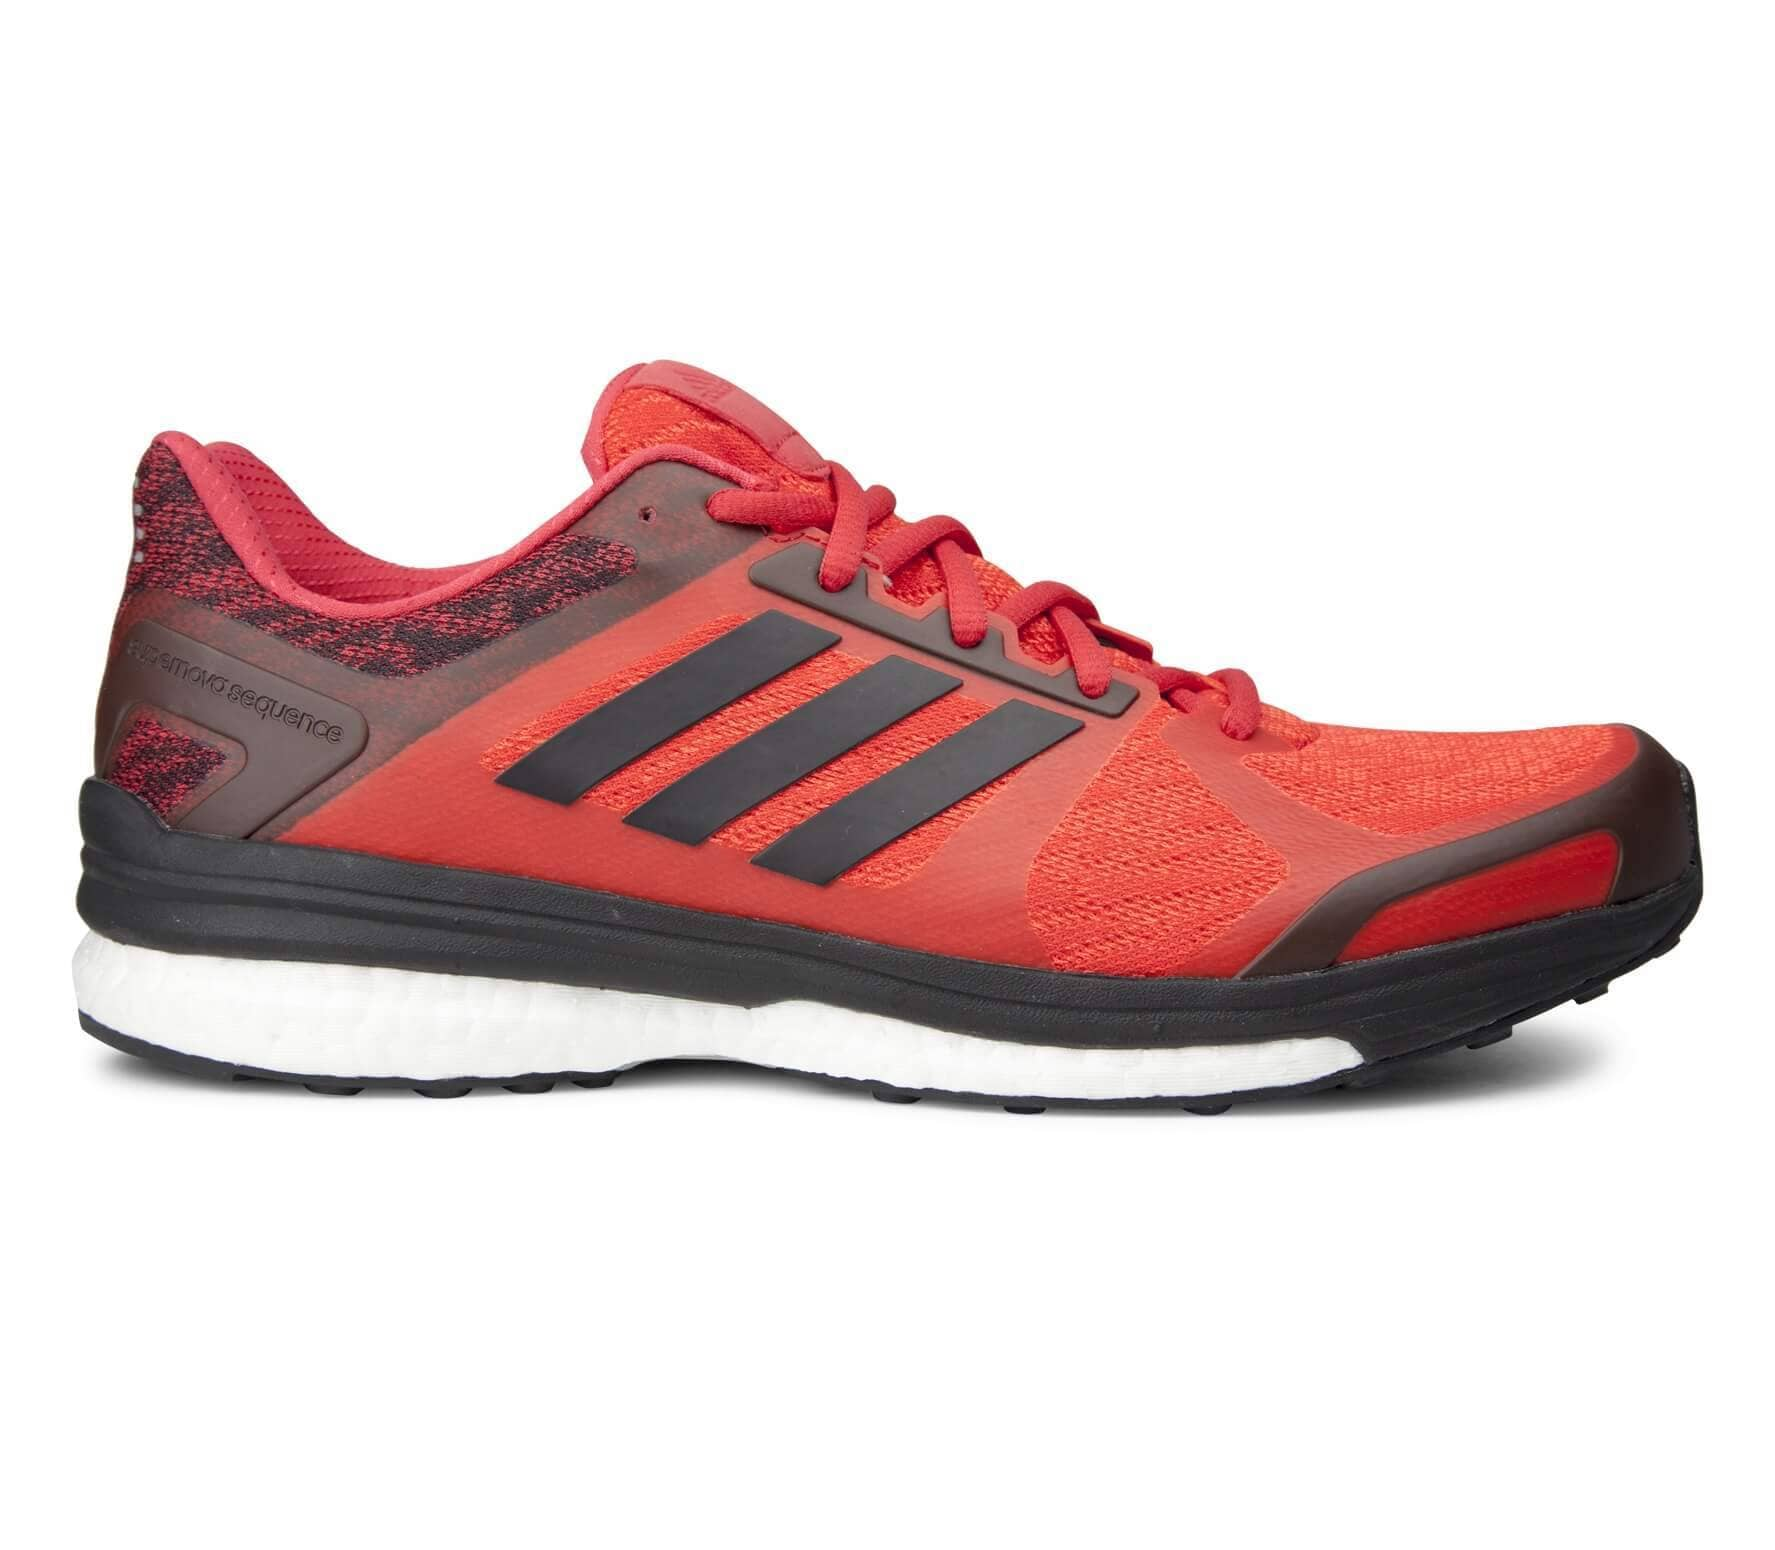 103349ab2 Adidas - Supernova Sequence 9 men s running shoes (red black) - buy ...